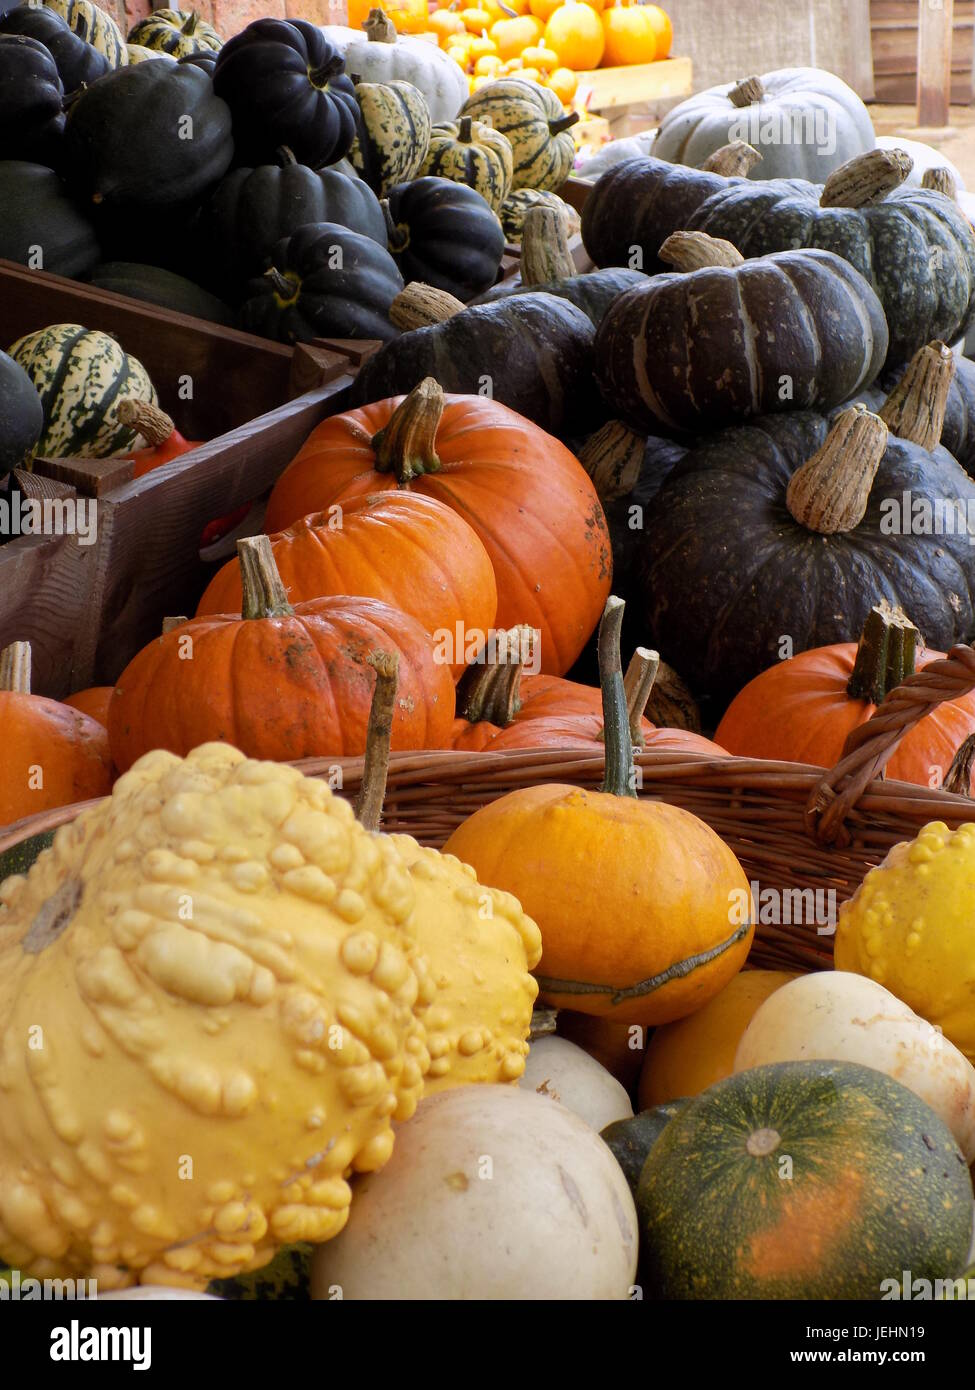 Pumpkins, gourds and squash piled up in Autumn Stock Photo